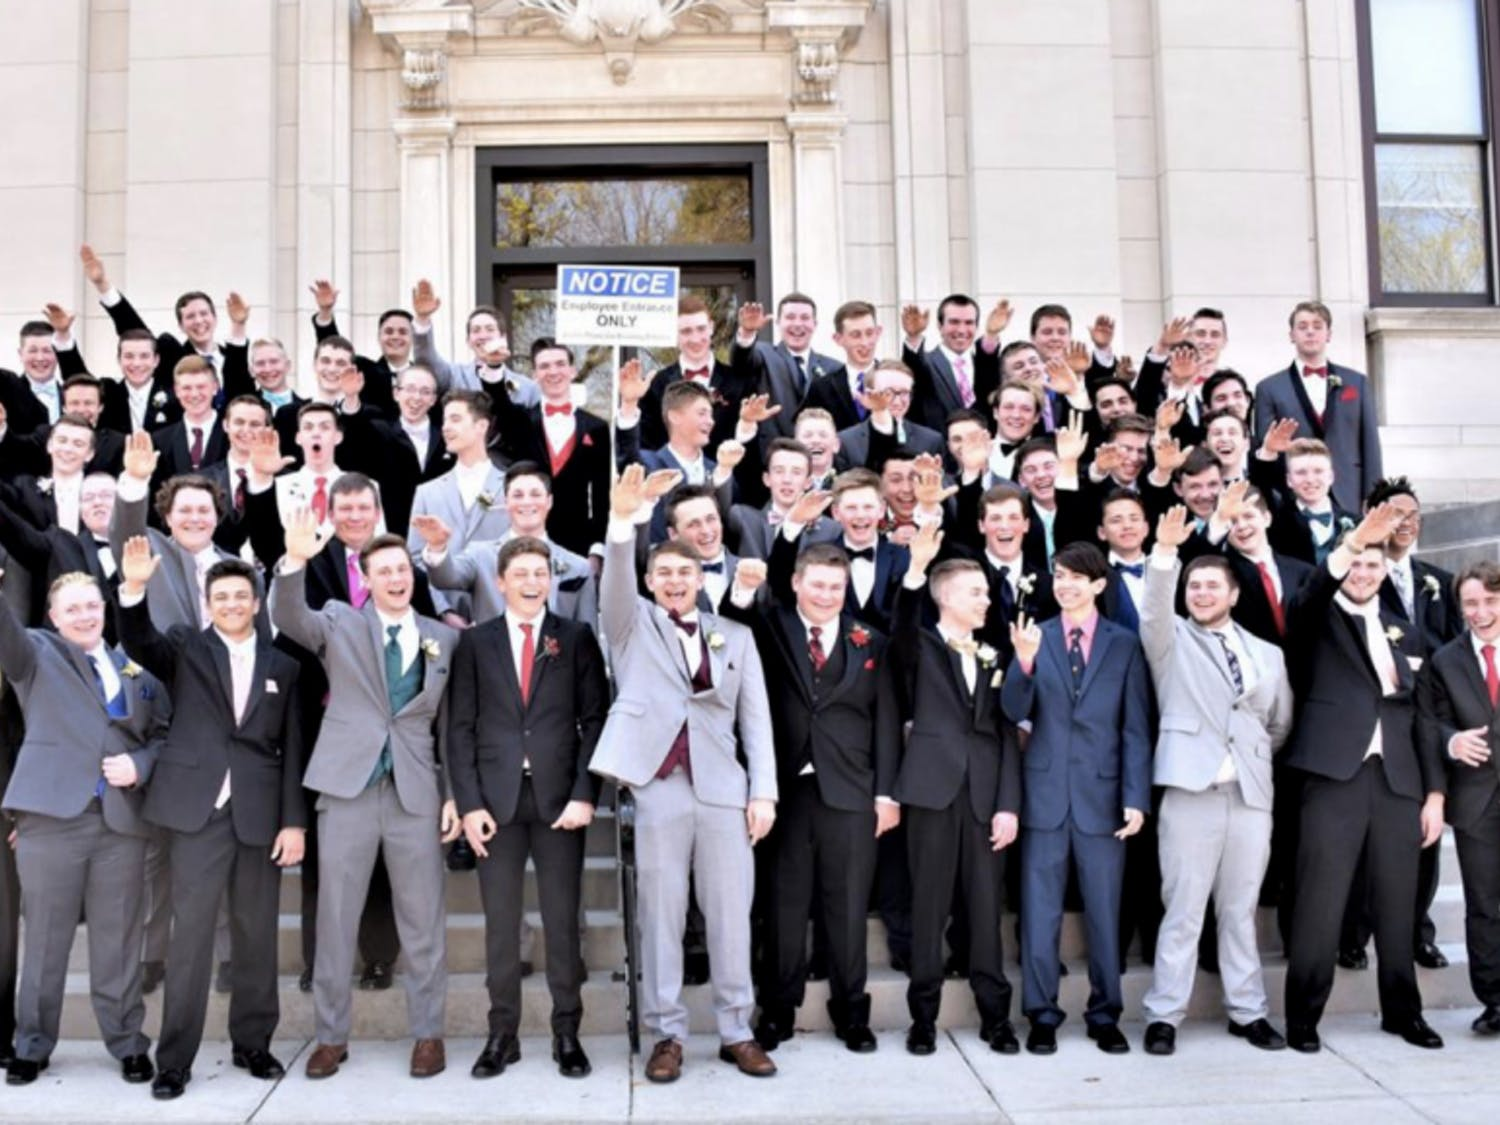 The Baraboo School District is investigating a photo posted to Twitter Sunday night showing dozens of Baraboo High School students giving a Nazi salute on the steps of the Sauk County Courthouse.